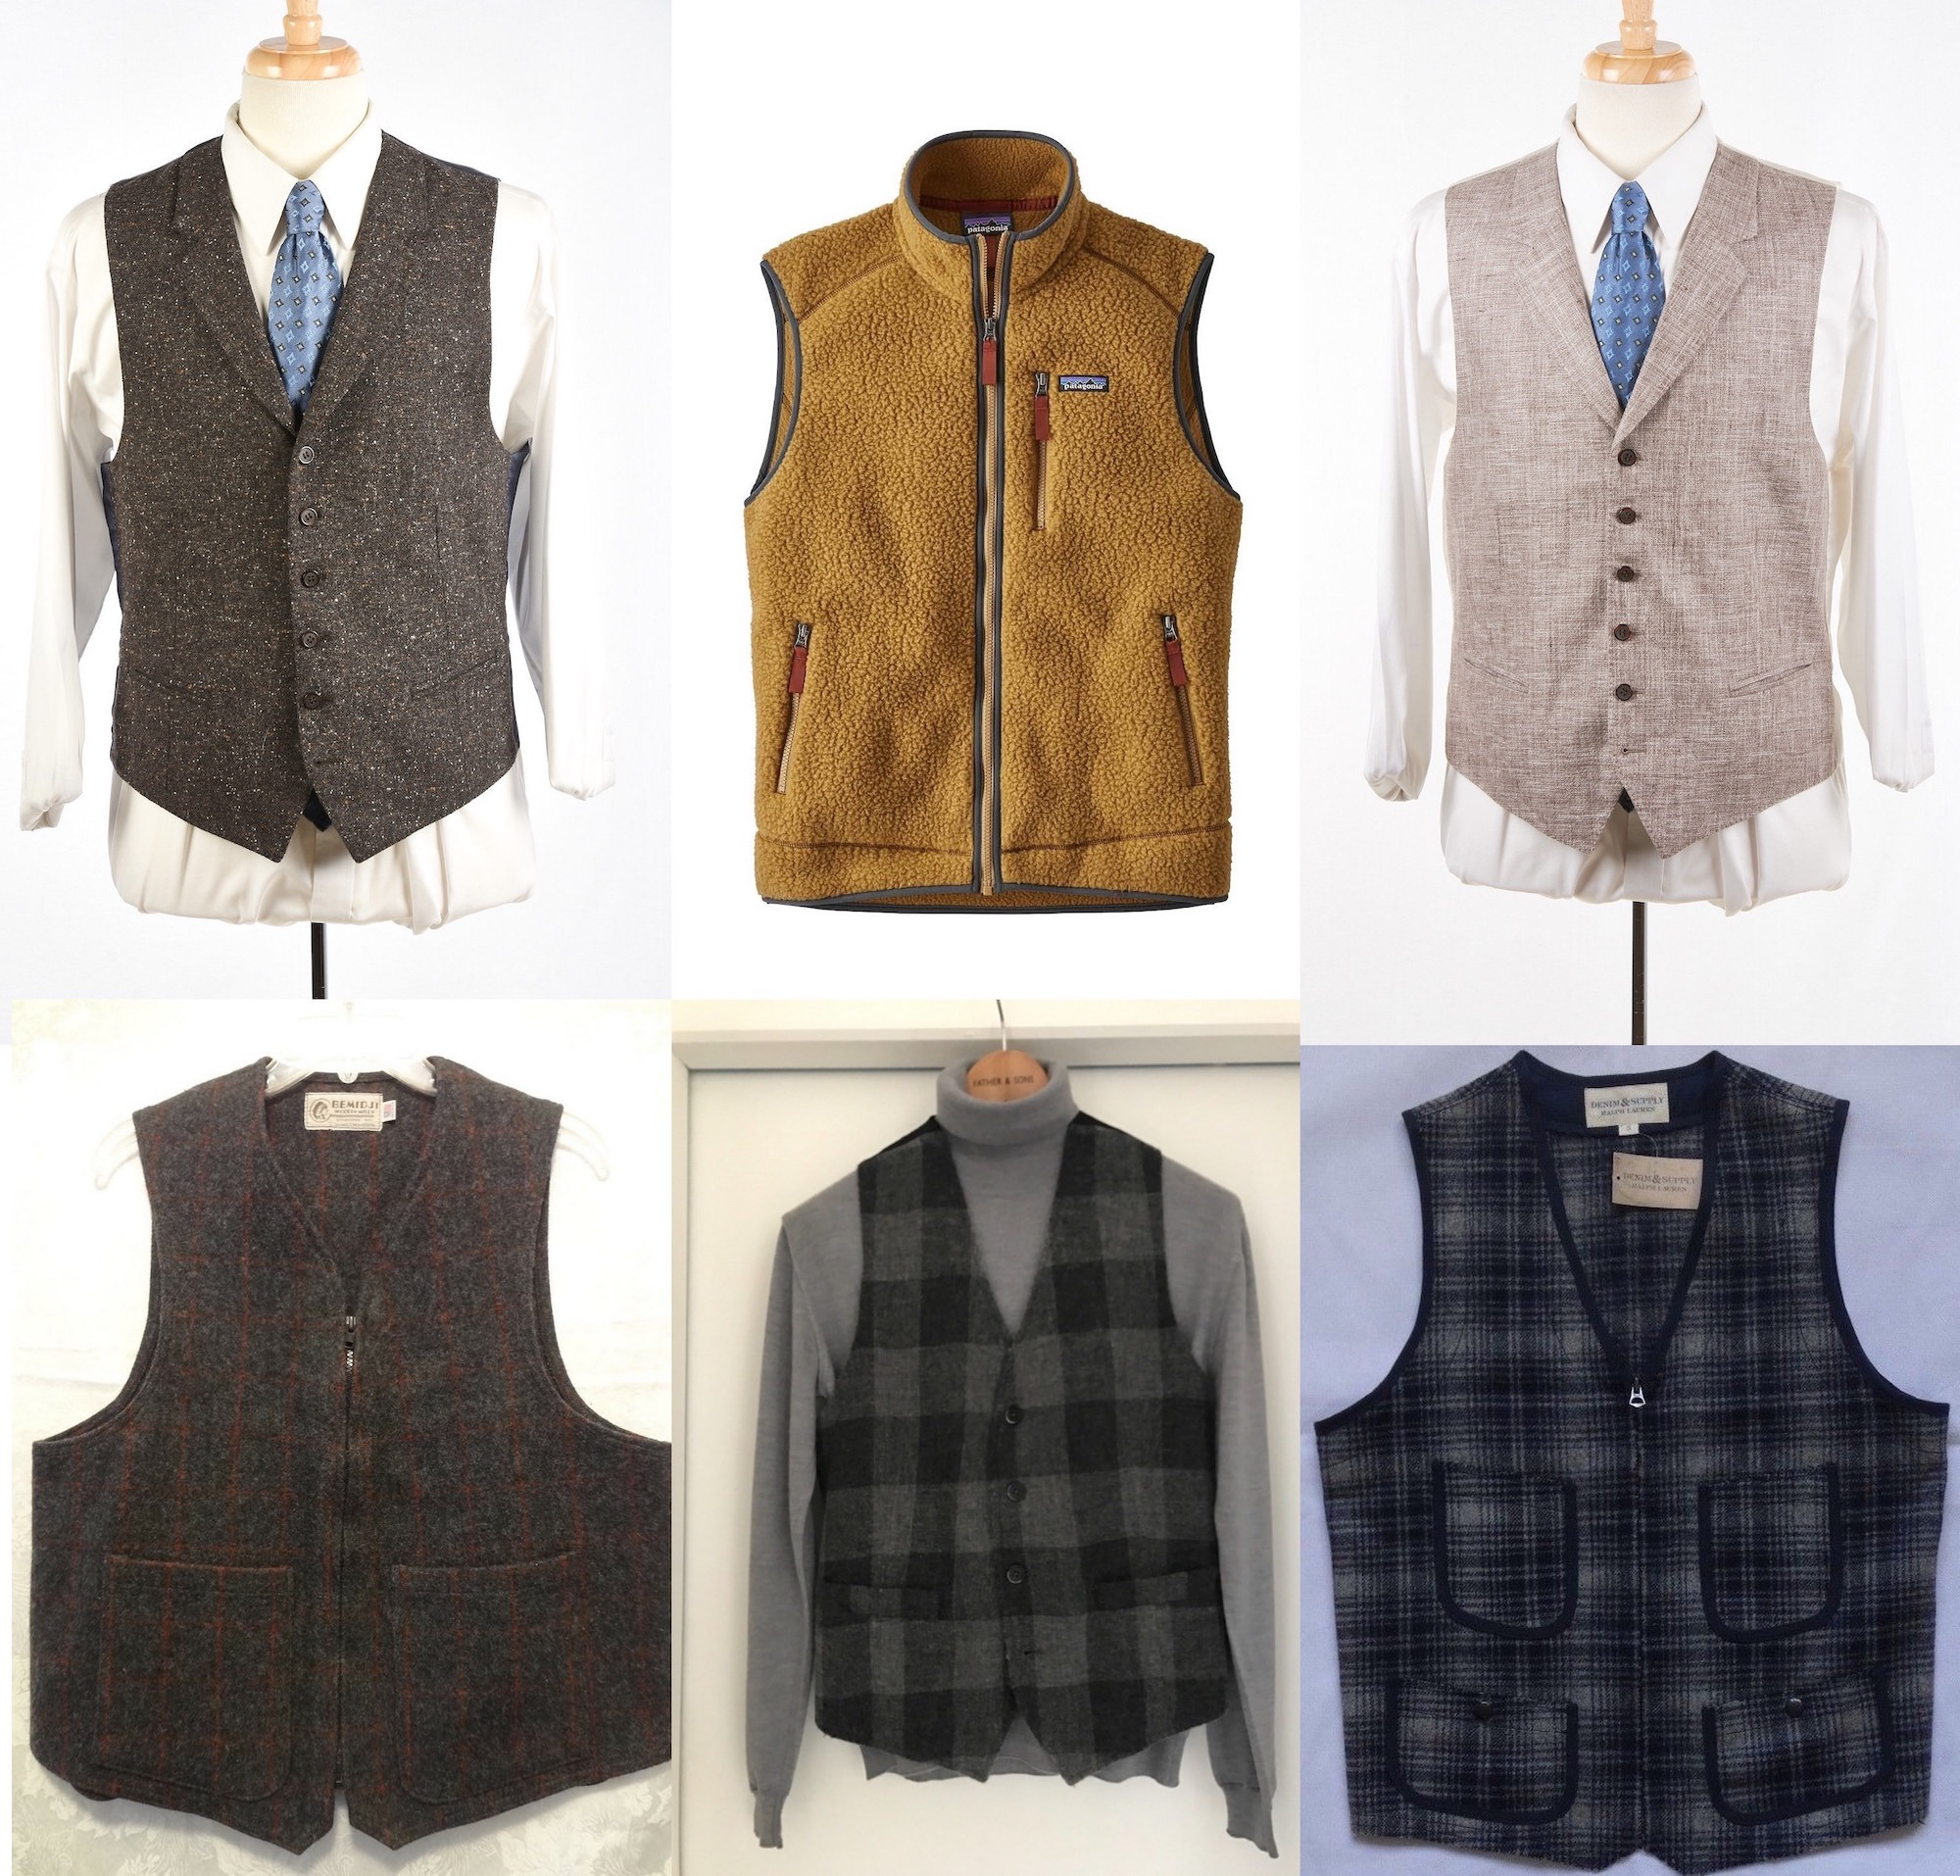 gilet homme vintage selection